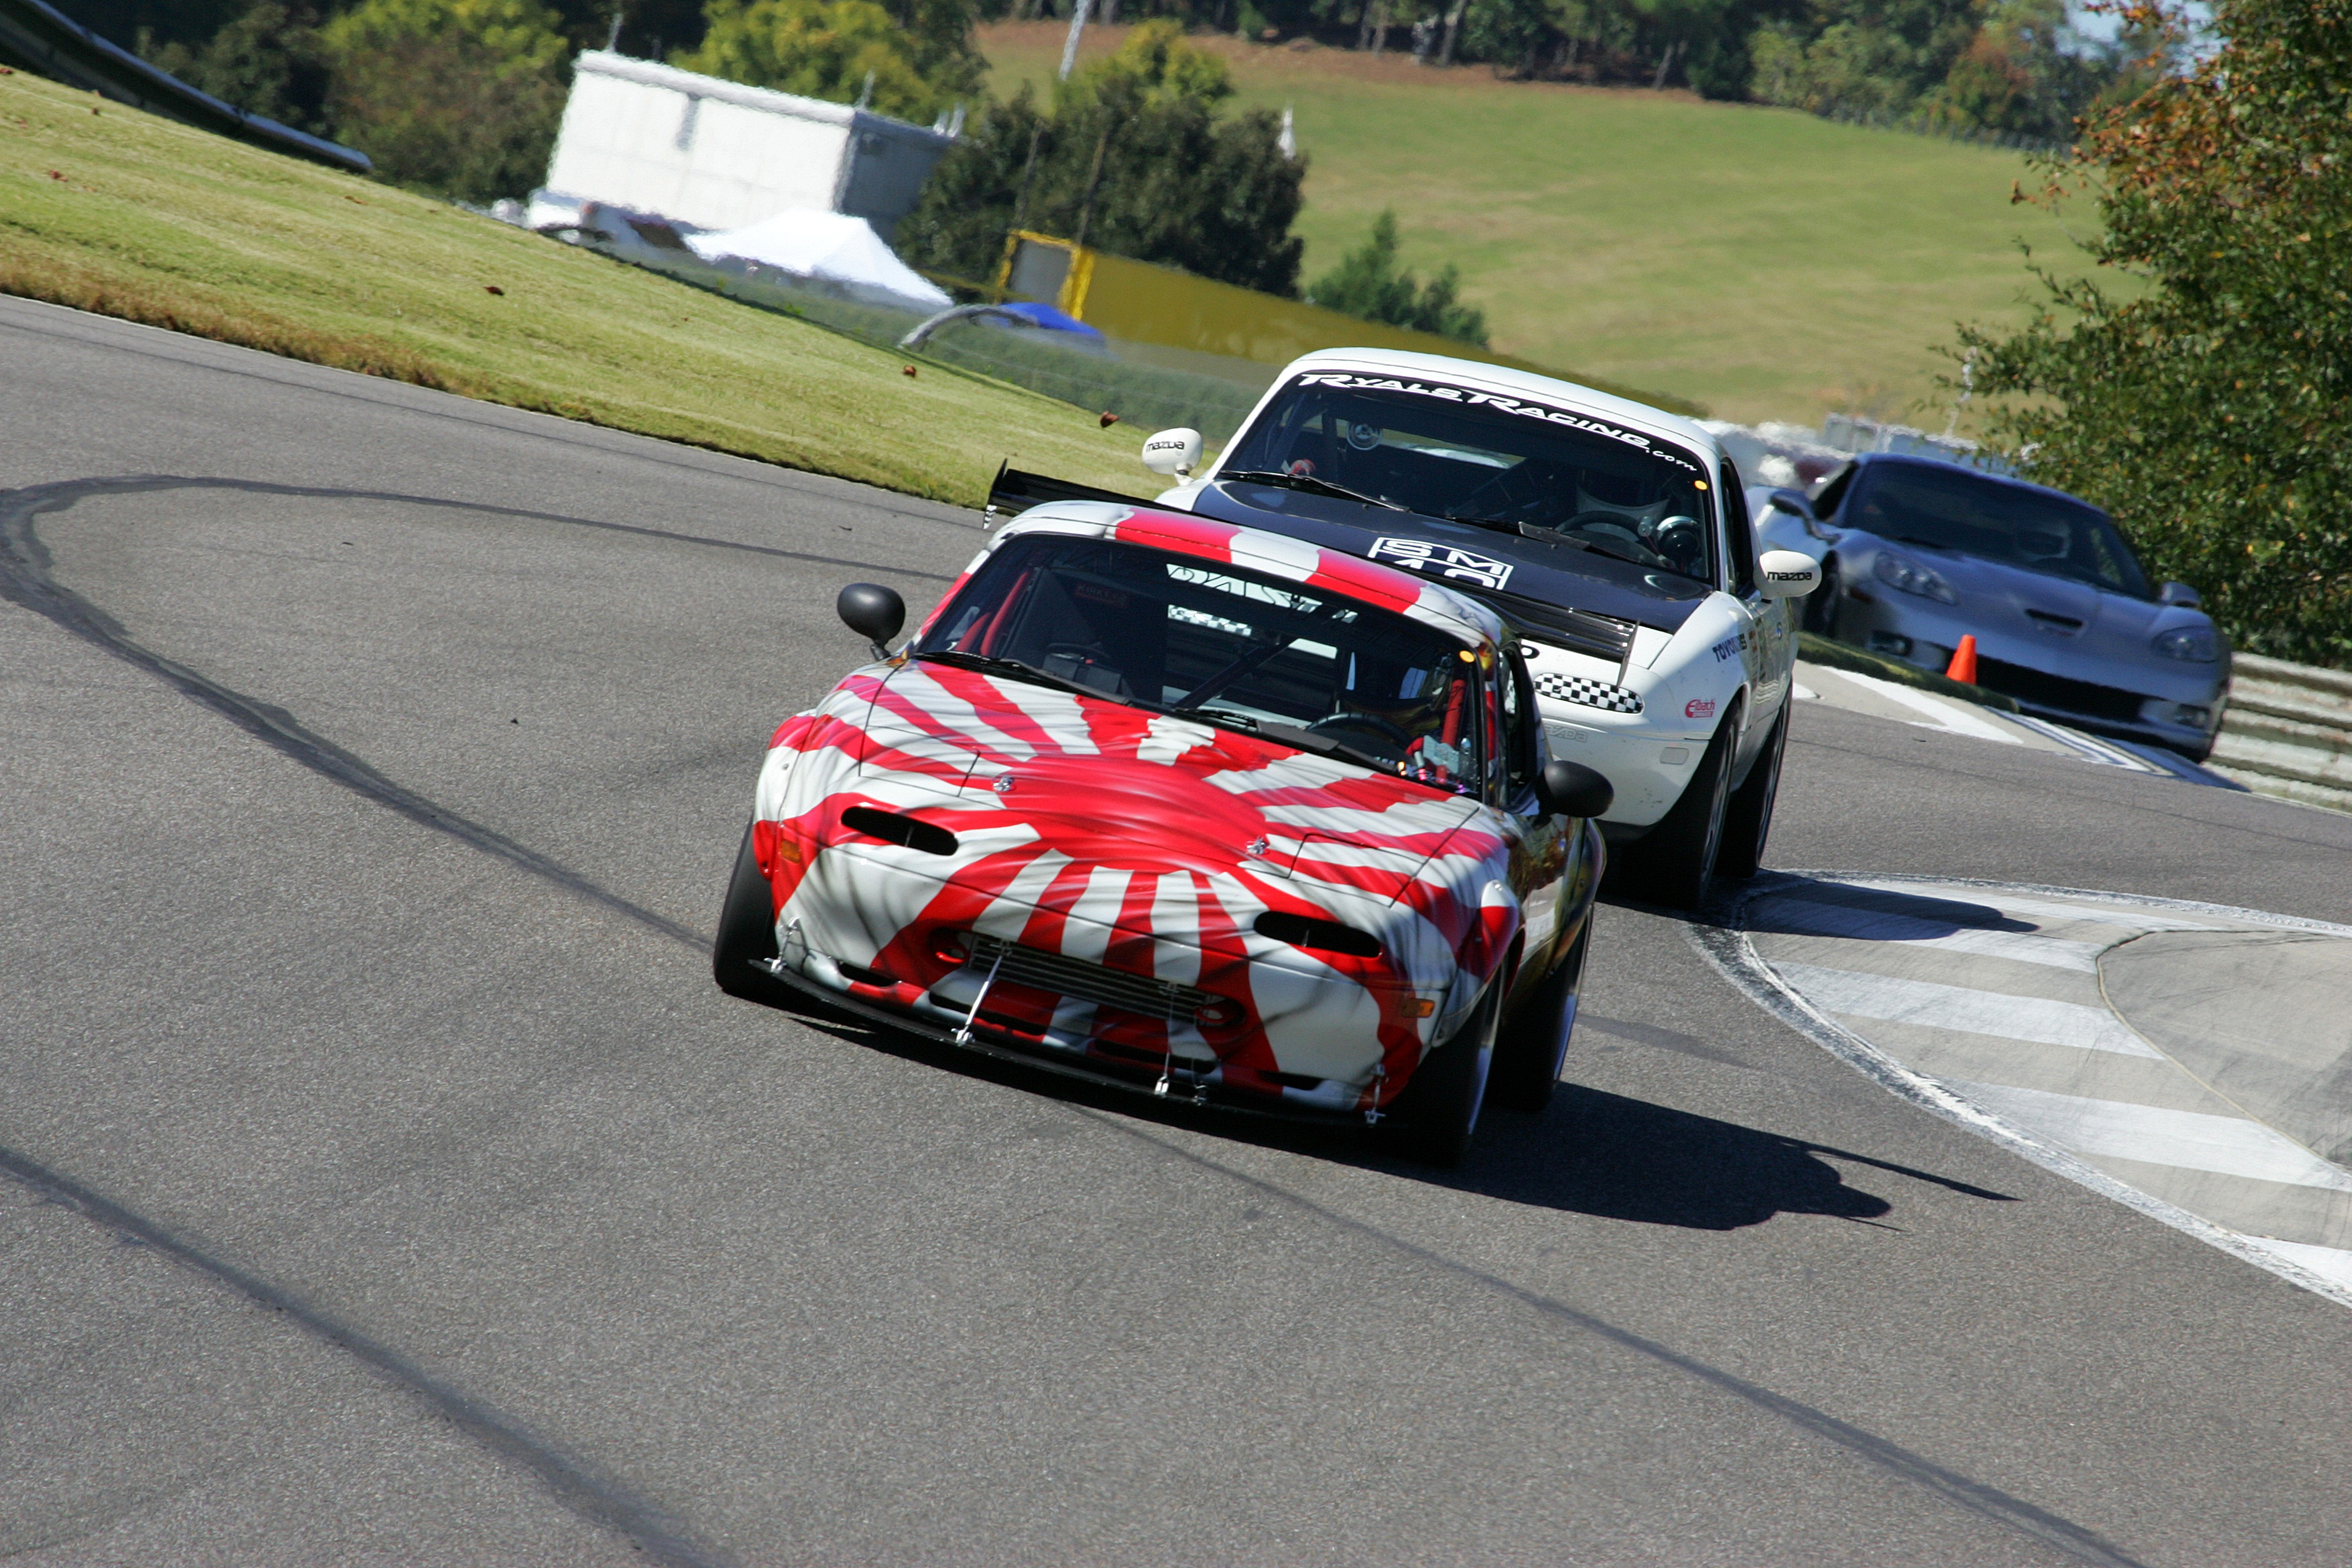 photo horsepower chicken a miata st fuel homebuilt bbq turbo adam in hubert mazda seeking miller feature